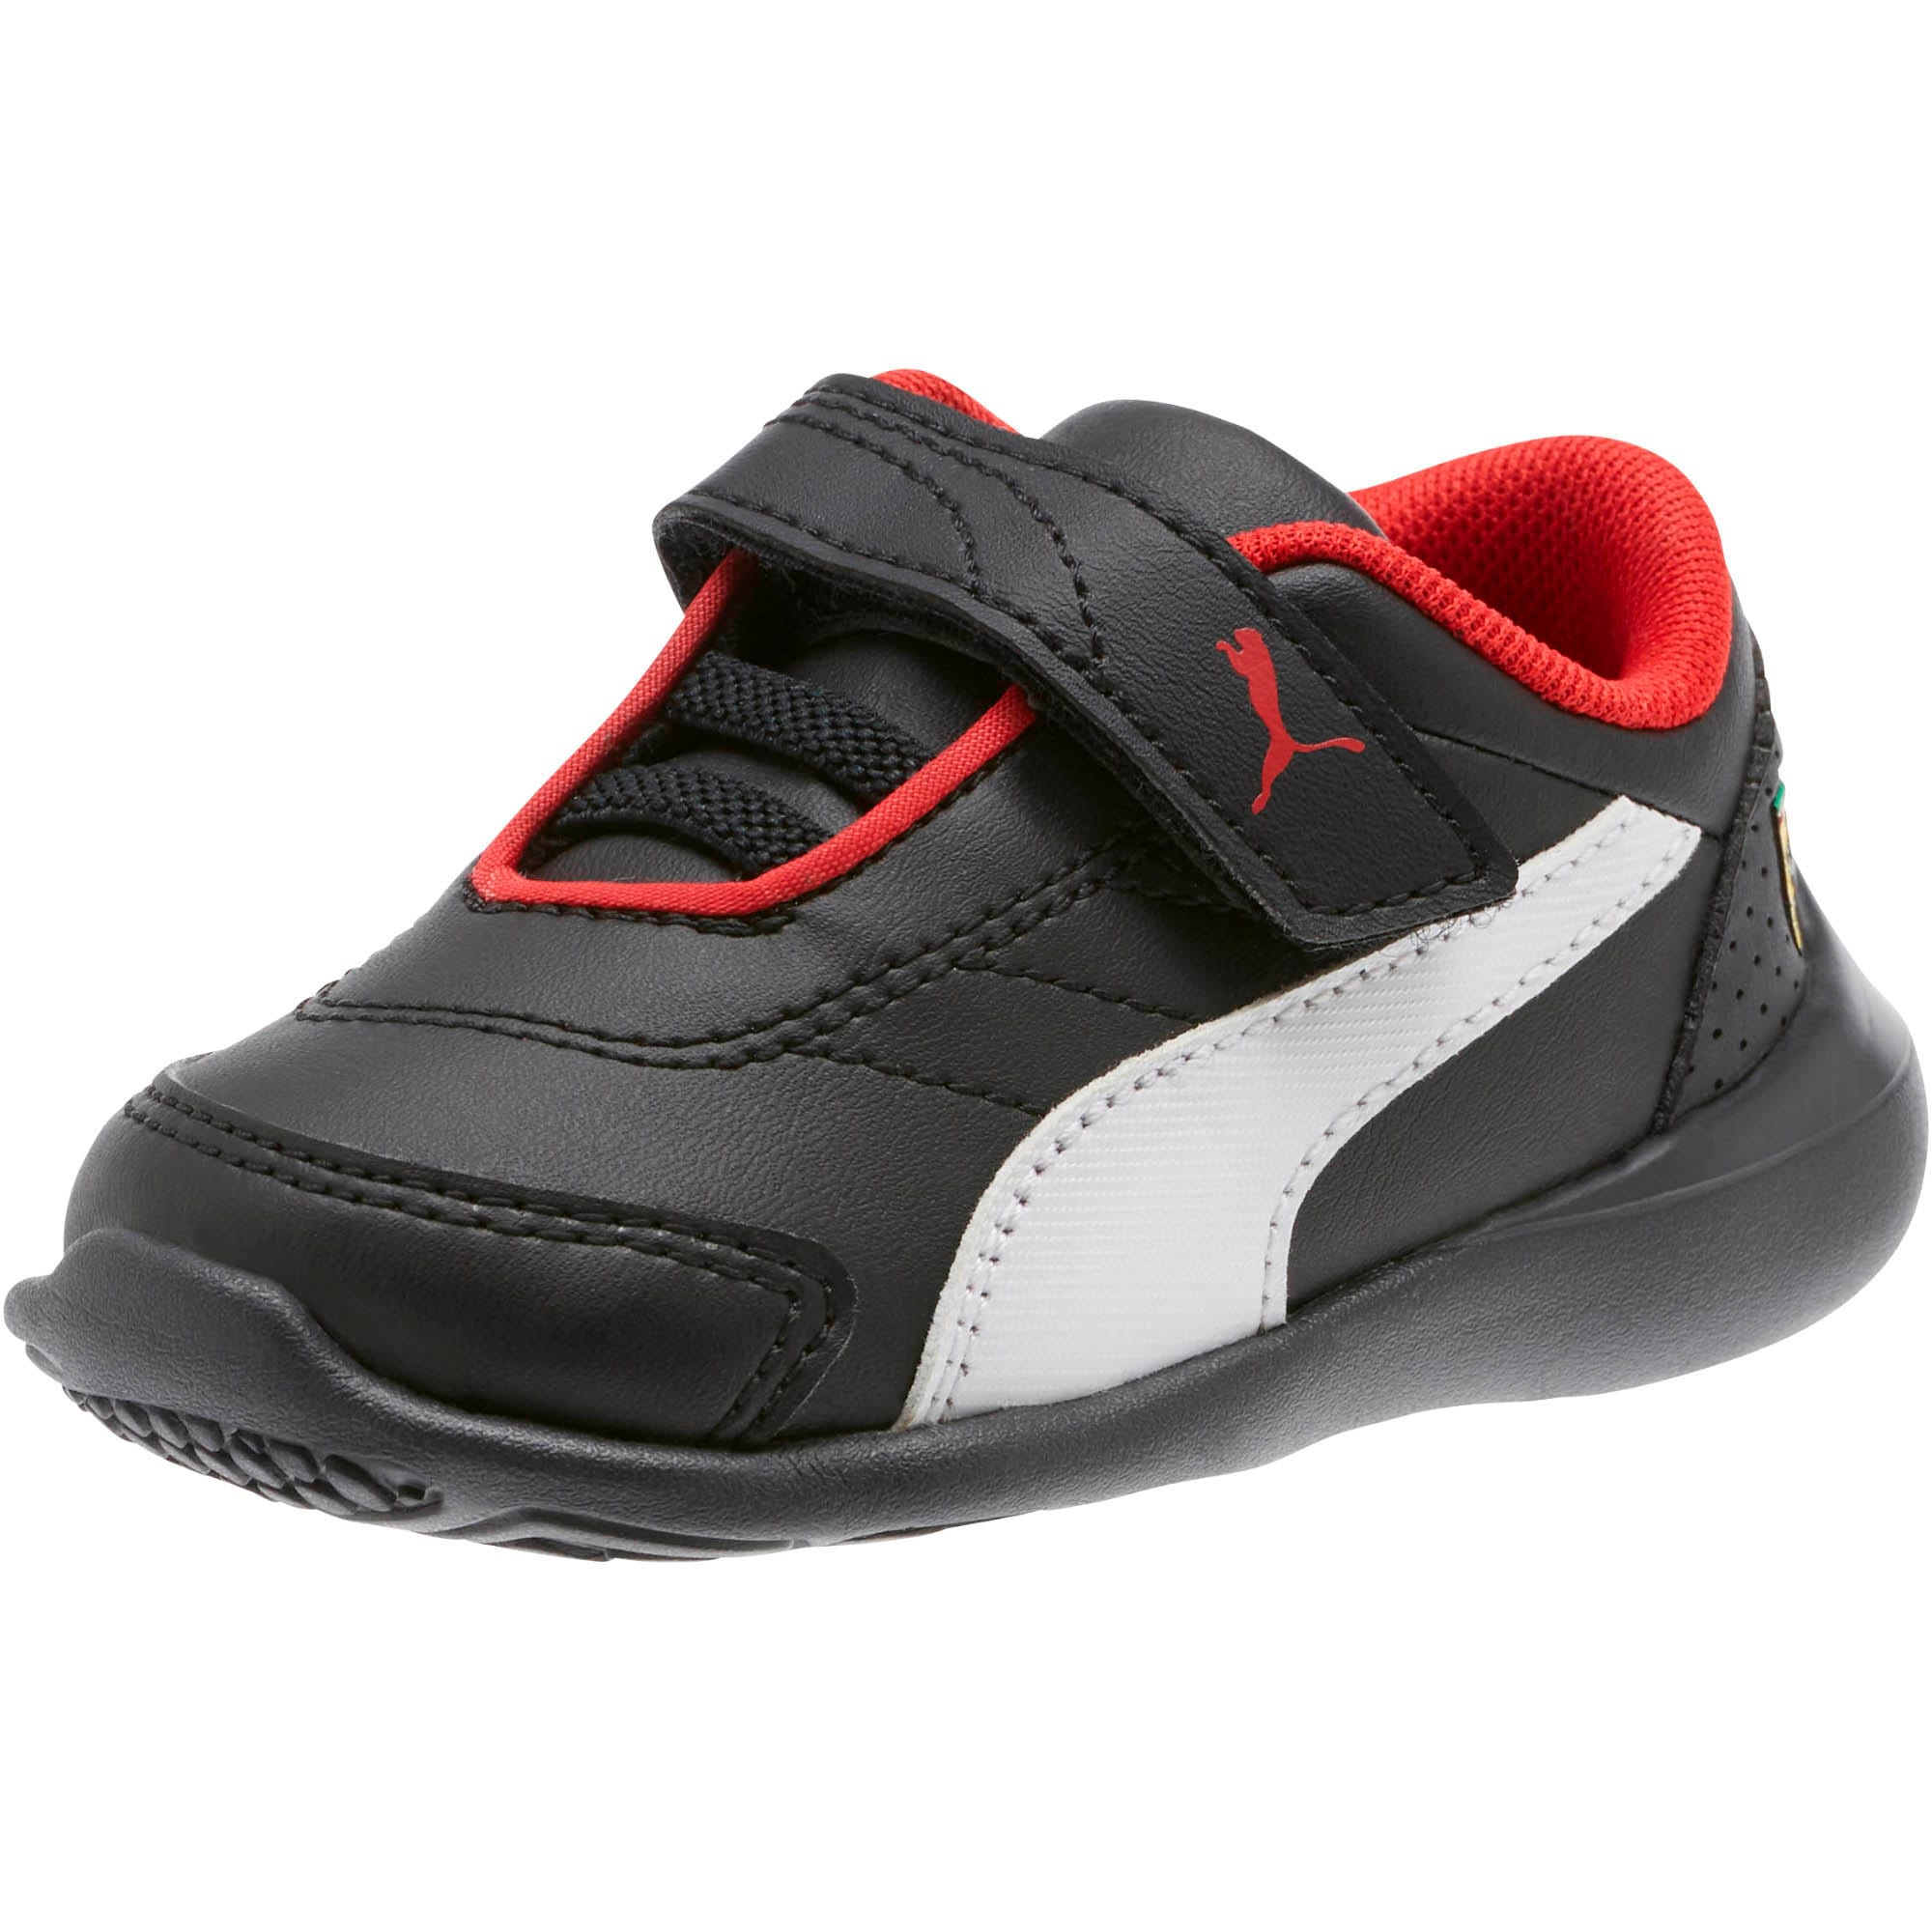 Thumbnail 1 of Scuderia Ferrari Kart Cat III Toddler Shoes, Puma Black-Puma White, medium